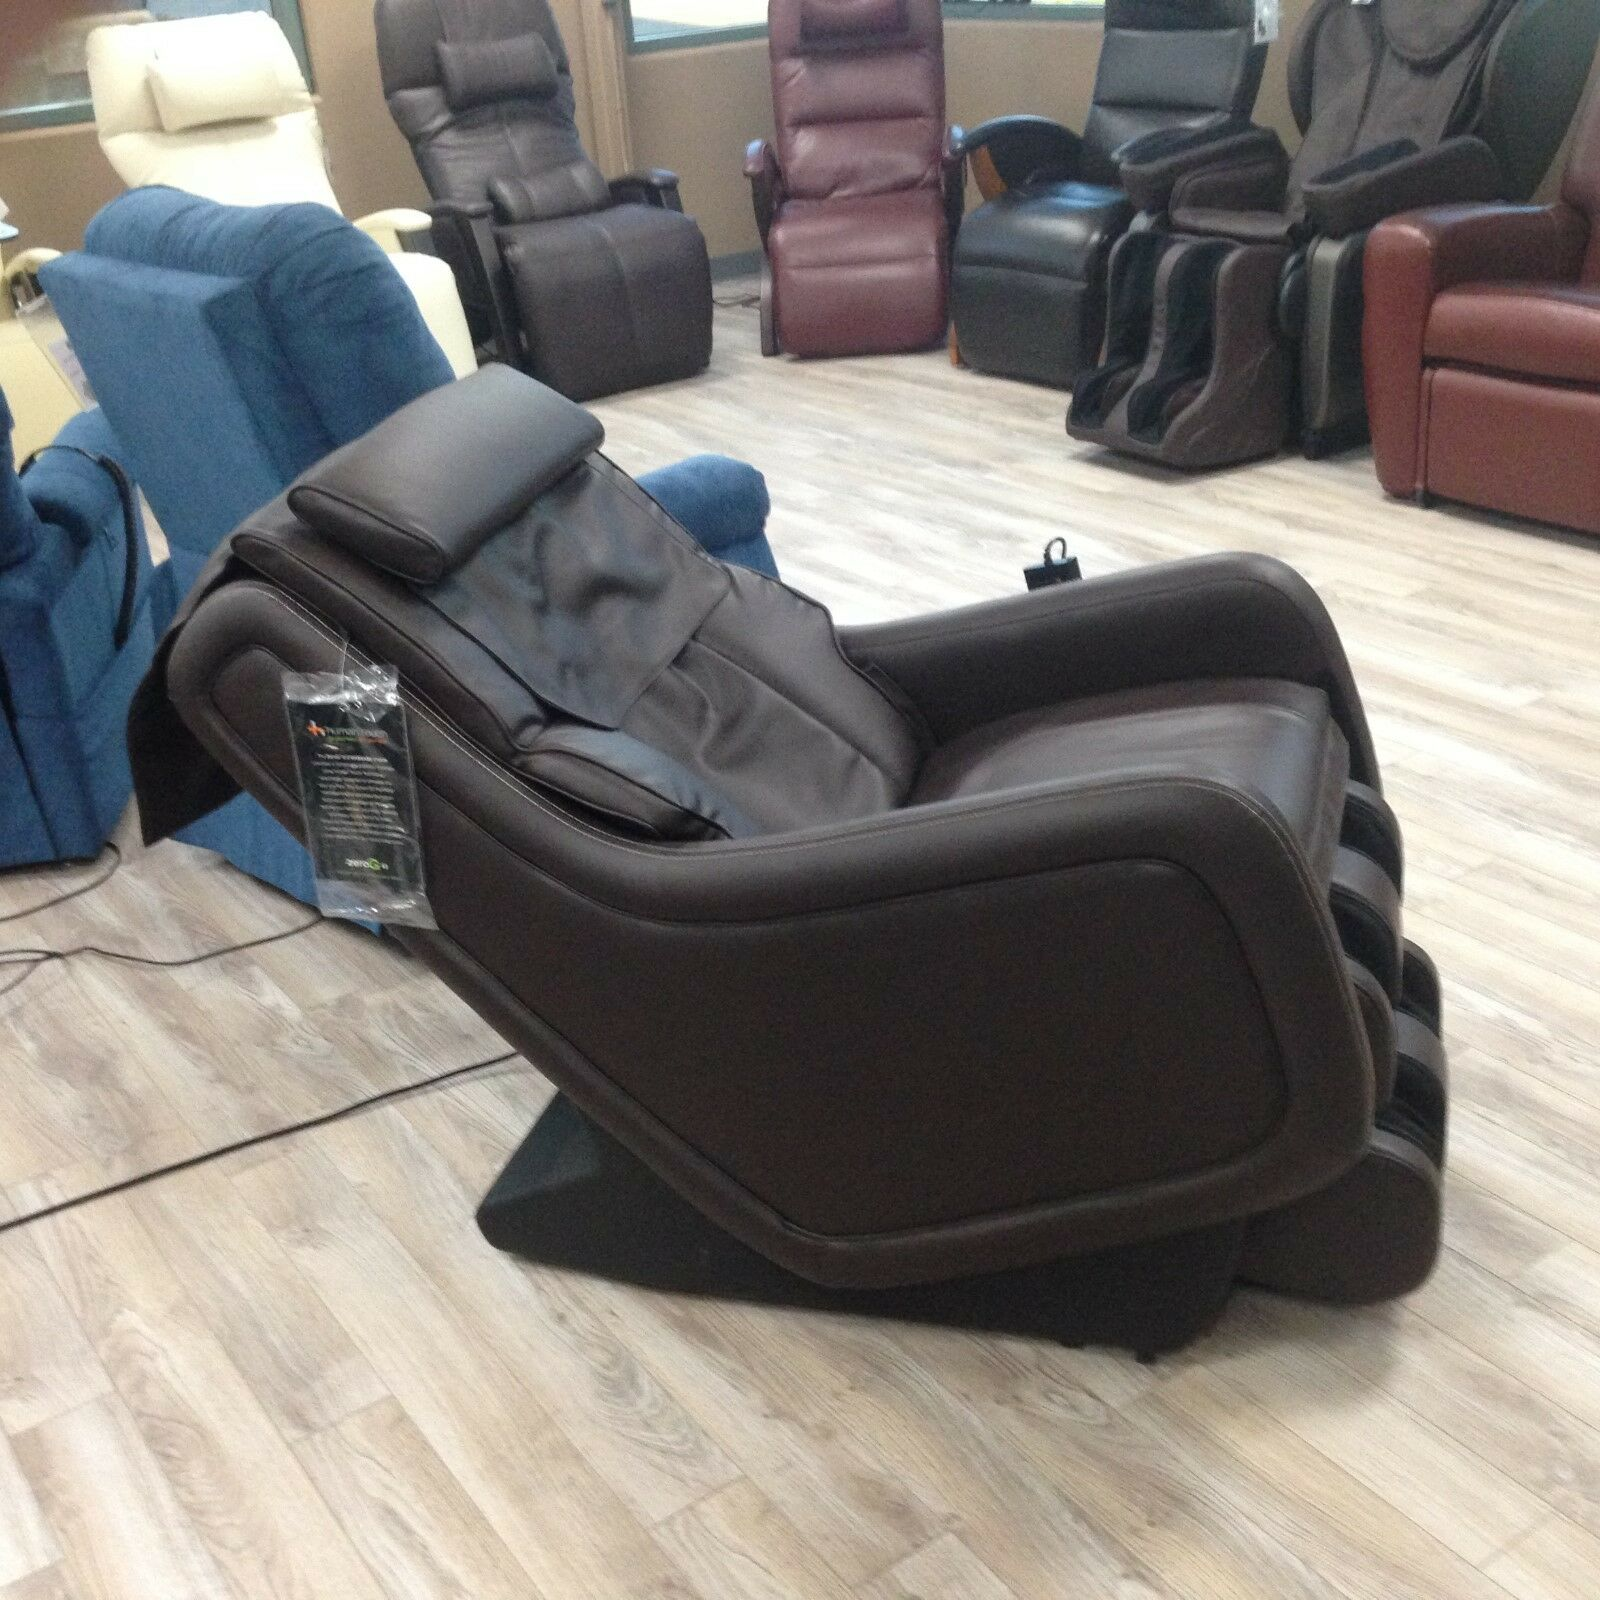 chairs big touch novo xt novoxtbrn chair massage brown novoxt human product